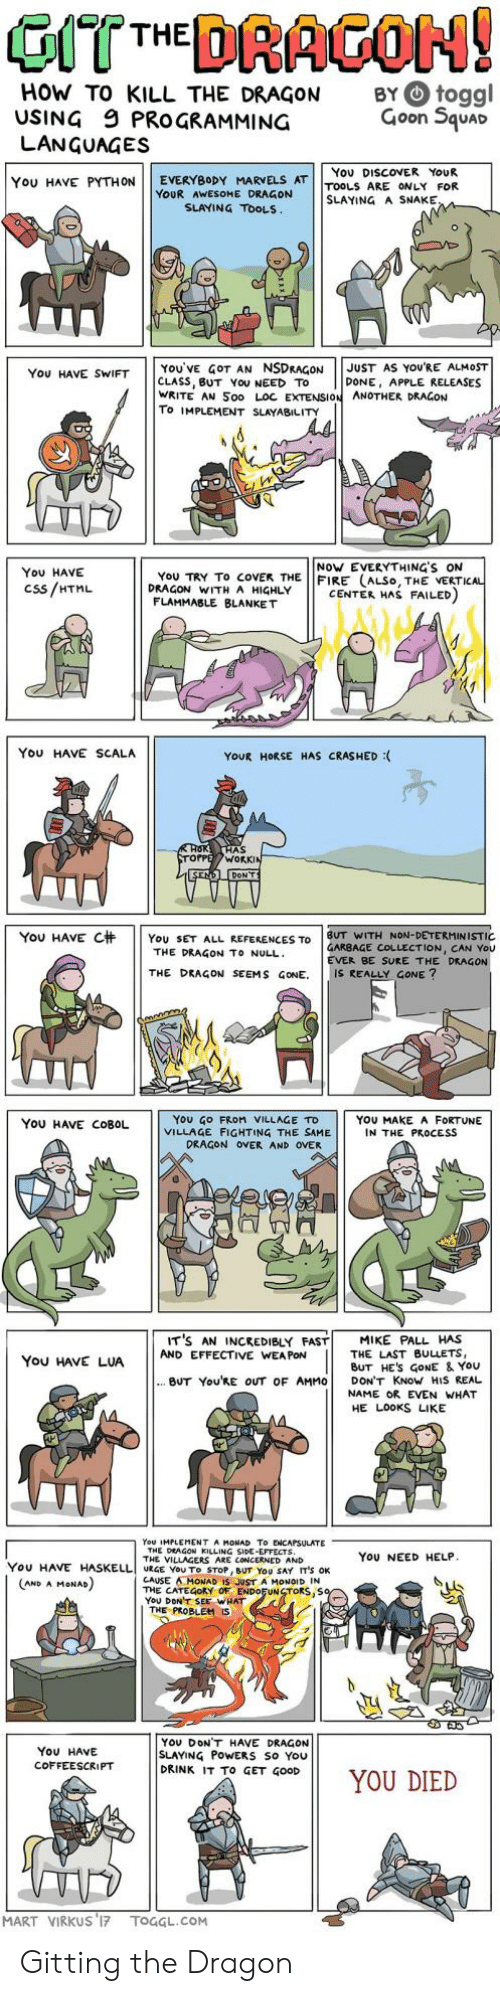 side effects: HOW TO KILL THE DRAGON  USING 9 PROGRAMMING  LANGUAGES  BY O toggl  Goon Squar  You DISCOVER YoUR  YOU HAVE PYTHON | | EVERYBODY MARVELS AT | |TOOLS ARE ONLY FOR  YOUR AWESOME DRAGON  SLAYING A SNAKE  SLAYING TOOLS  YOU'VE GOT AN NSDRAGONJUST AS YOURE ALMOST  CLASS, BUT YoU NEED TO  WRITE AN Soo LOC EXTENSION ANOTHER DRAGON  To IMPLEMENT SLAYABILITY  You HAVE SWIFT  DONE, APPLE RELEASES  NoW EVERYTHING'S ON  You HAVE  Css/HTML  YoU TRY To coVEK THE FIRE (ALSo, THE VERTI  DRAGON WITH A HIGHLY  CENTER HAS FAILED  FLAMMABLE BLANKET  You HAVE SCALA  YOUR HORSE HAS CRASHED :  AS  WORK  YOU HAVE C杄 | | YOU SET ALL REFERENCES TO | BUT WITH NON-DETERMINISTIC  GARBAGE COLLECTION, CAN You  EVER BE SURE THE DRAGON  THE DRAGON TO NULL  THE DRAGON SEEMS GONE. IS REALLY GONE?  YoU GO FRoM VILLAGE TD  VILLAGE FIGHTING THE SAME  YOU HAVE COBOL  YOU MAKE A FORTUNE  IN THE PROCESS  DRAGON OVER AND OVER  IT'S AN INCREDIBLY FAST! MIKE PALL HAS  You HAVE LUAAND EFFECTIVE WANE ES  THE LAST BULLETS,  BUT HES GoNE & YoU  BUT You'RE OUT OF AMMO DON'T KNoW HIS REAL  NAME OR EVEN WHAT  HE LOOKS LIKE  You IMPLEMENT A MONAD To ENCAPSULATE  THE DEAGON KILLING SIDE-EFFECTS  THE VILLAGERS ARE CONCERNED AND  YoU NEED HELP  YOU HAVE HASELLI URGE YOU To STOP, BUT YOU SAY IT'S OK  CAUSE AMONAD IS JUST A MONOID IN  THE CATEGORY OF ENDOFUNSTORS,S  YoU DONT SEE WHAT  AND A MoNAD  THE PROBLEM  YOU DONT HAVE DRAGON  SLAYING PoWERS So You  DRINK IT To GET GOOD  ON11 YOU DIED  You HAVE  COFFEESCRIPT  MART VIRKUS 17 TOGGL.COM Gitting the Dragon